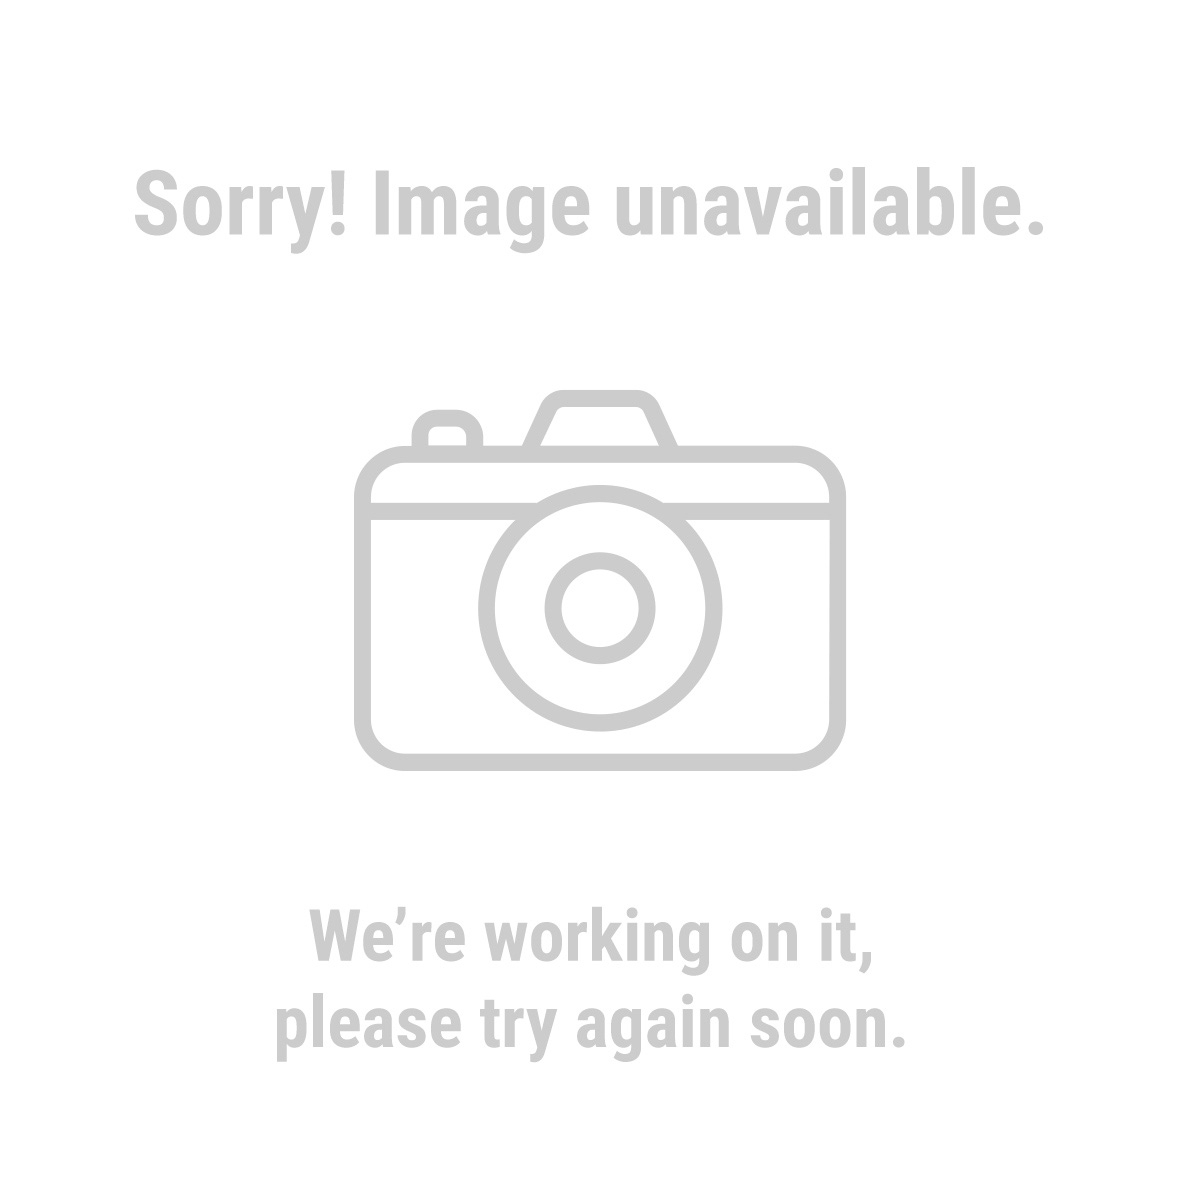 "Drill Master 95873 29 Piece Titanium Nitride-Coated M2 High Speed Steel Drill Bits with 3/8"" Cutdown Shanks"